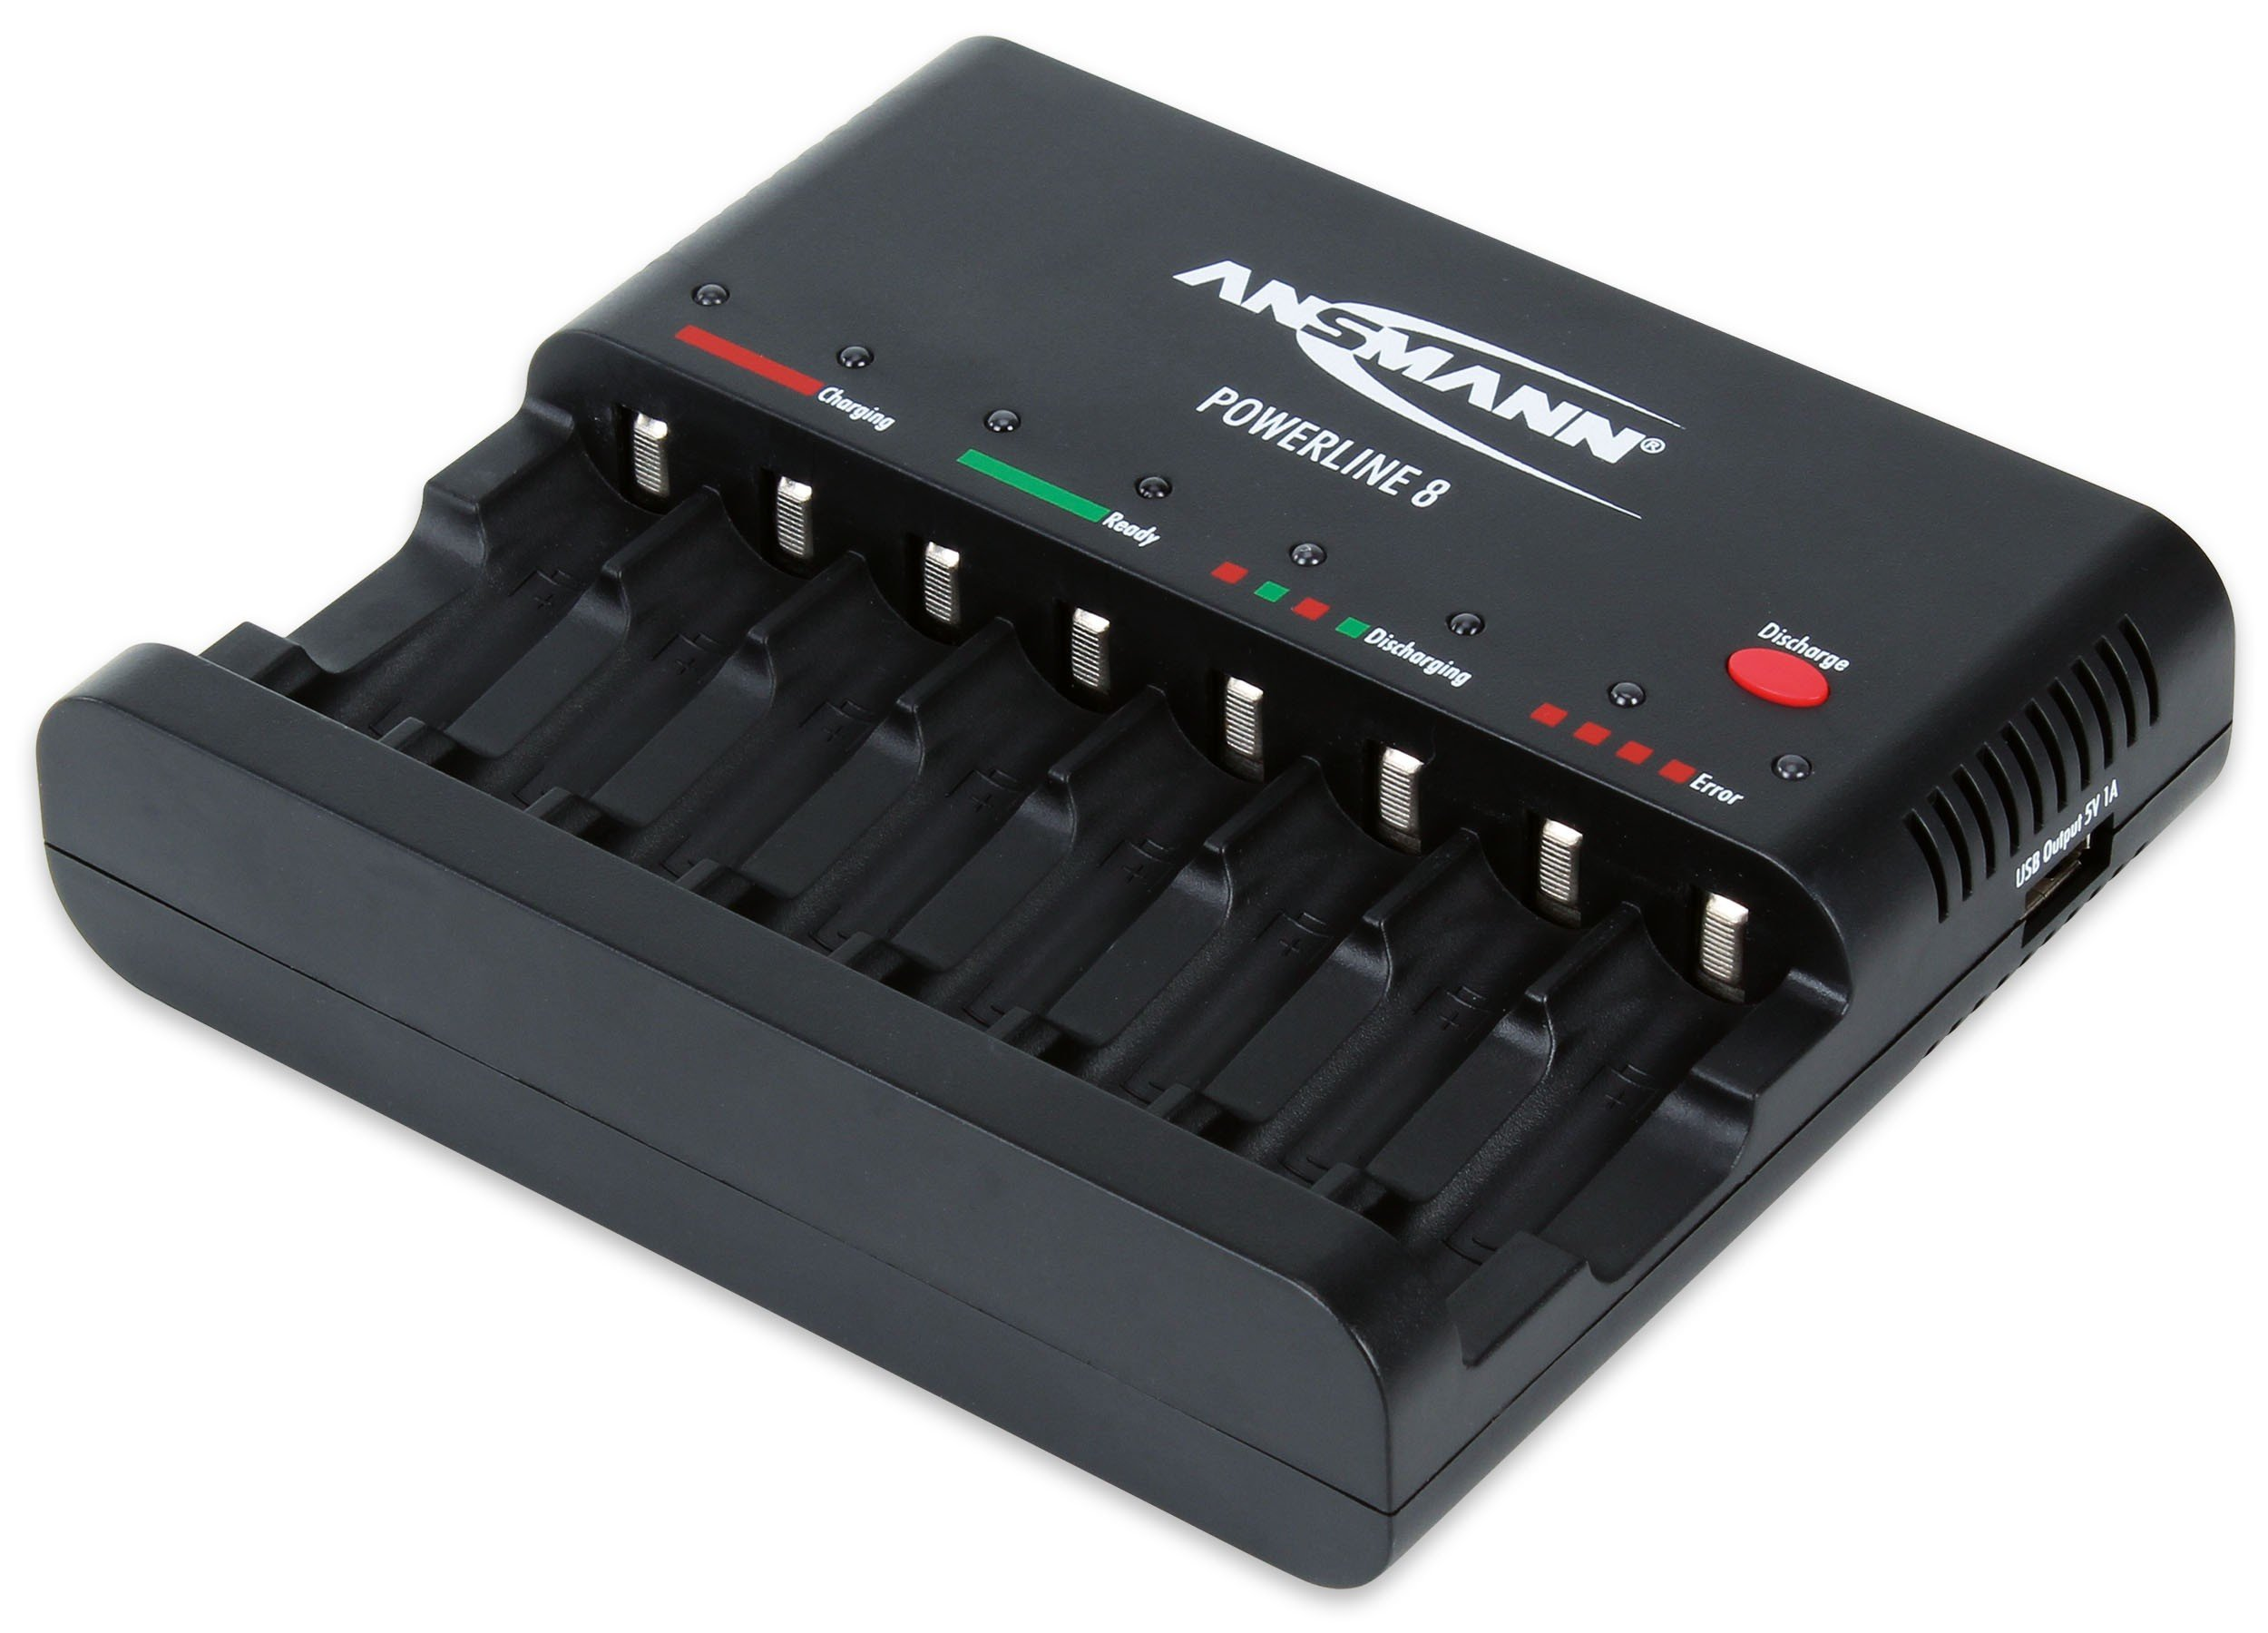 8-Bay Battery Charger for NiMH/NiCad AA & AAA Batteries with 2 Free 4-Packs of Max E Pro AA Batteries